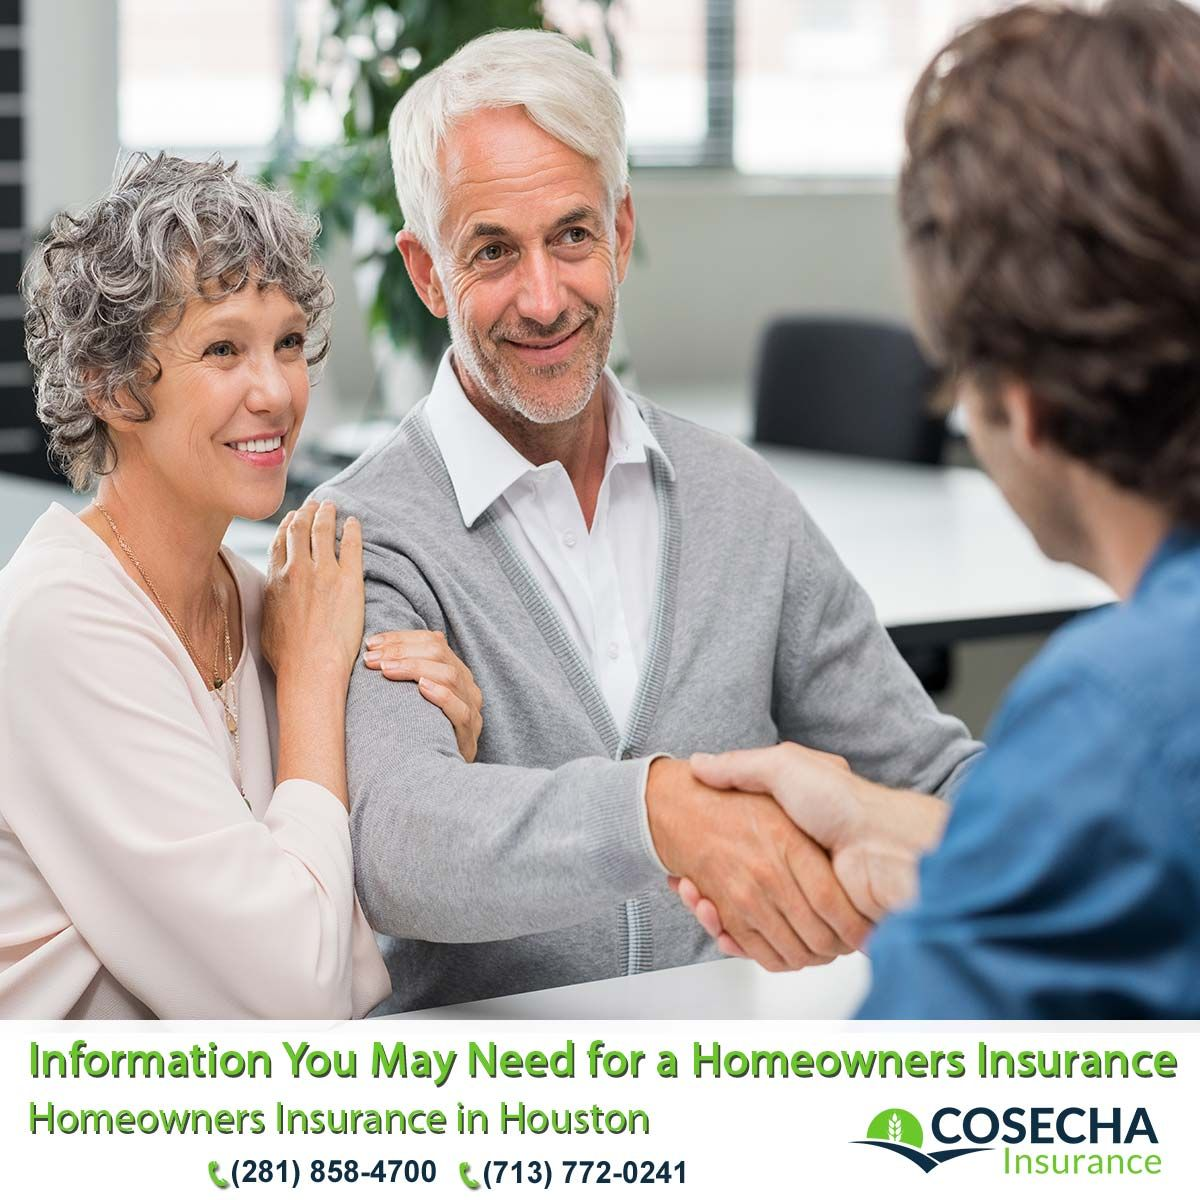 Information You May Need for a Homeowners Insurance